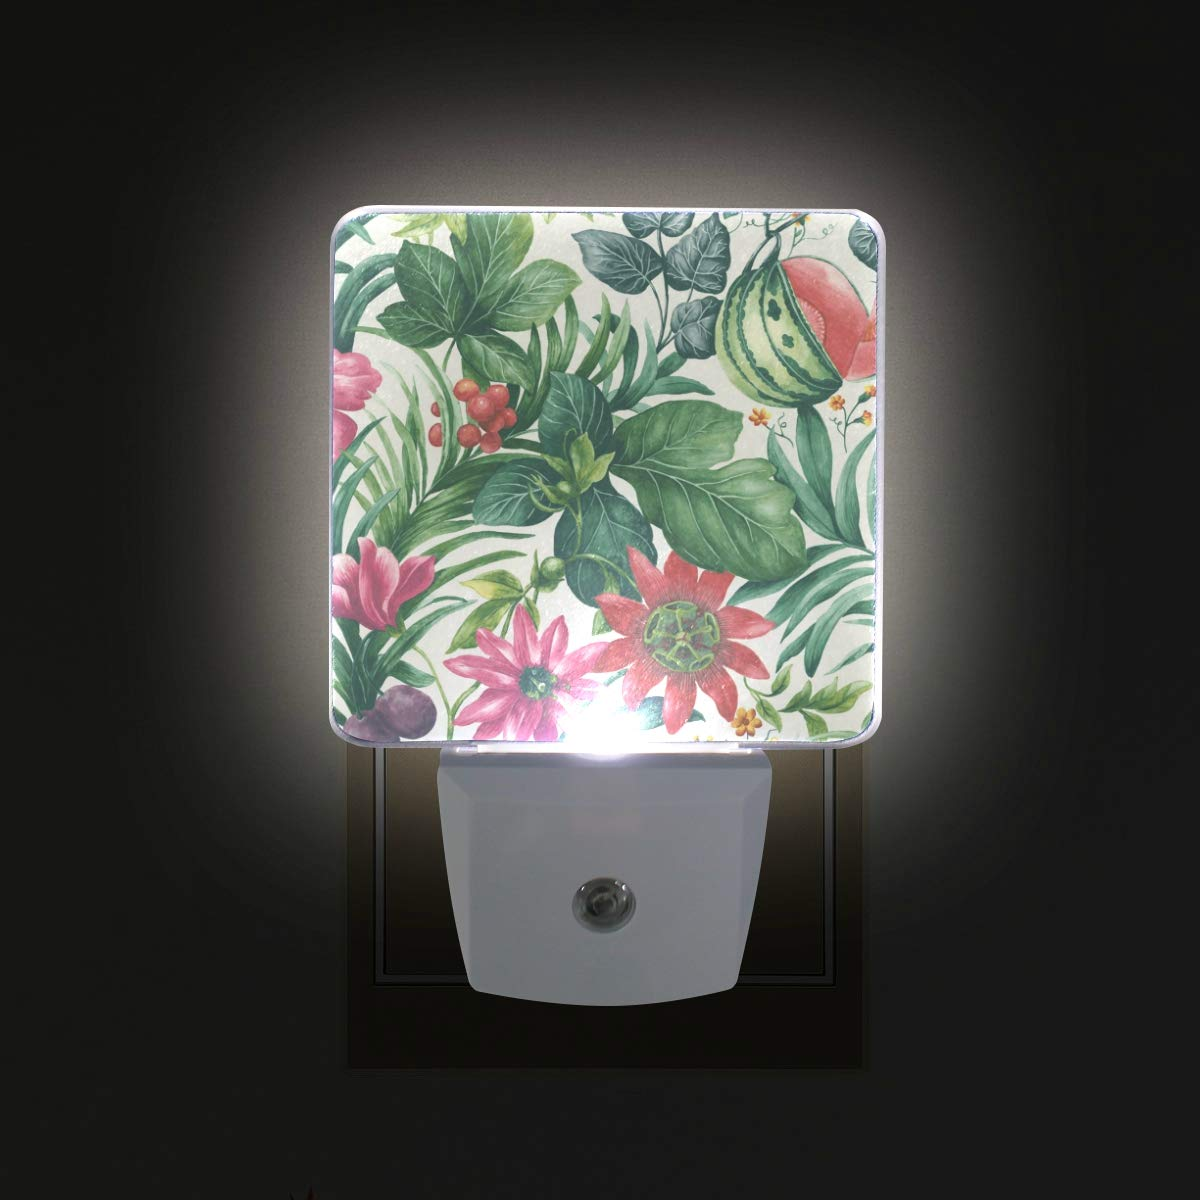 Brighter Tropical Leaves LED Sensor Night Light for Kids&Adults Bedroom Dusk to Dawn Night Lights Lamp Perfect for Hallway,Dining Room